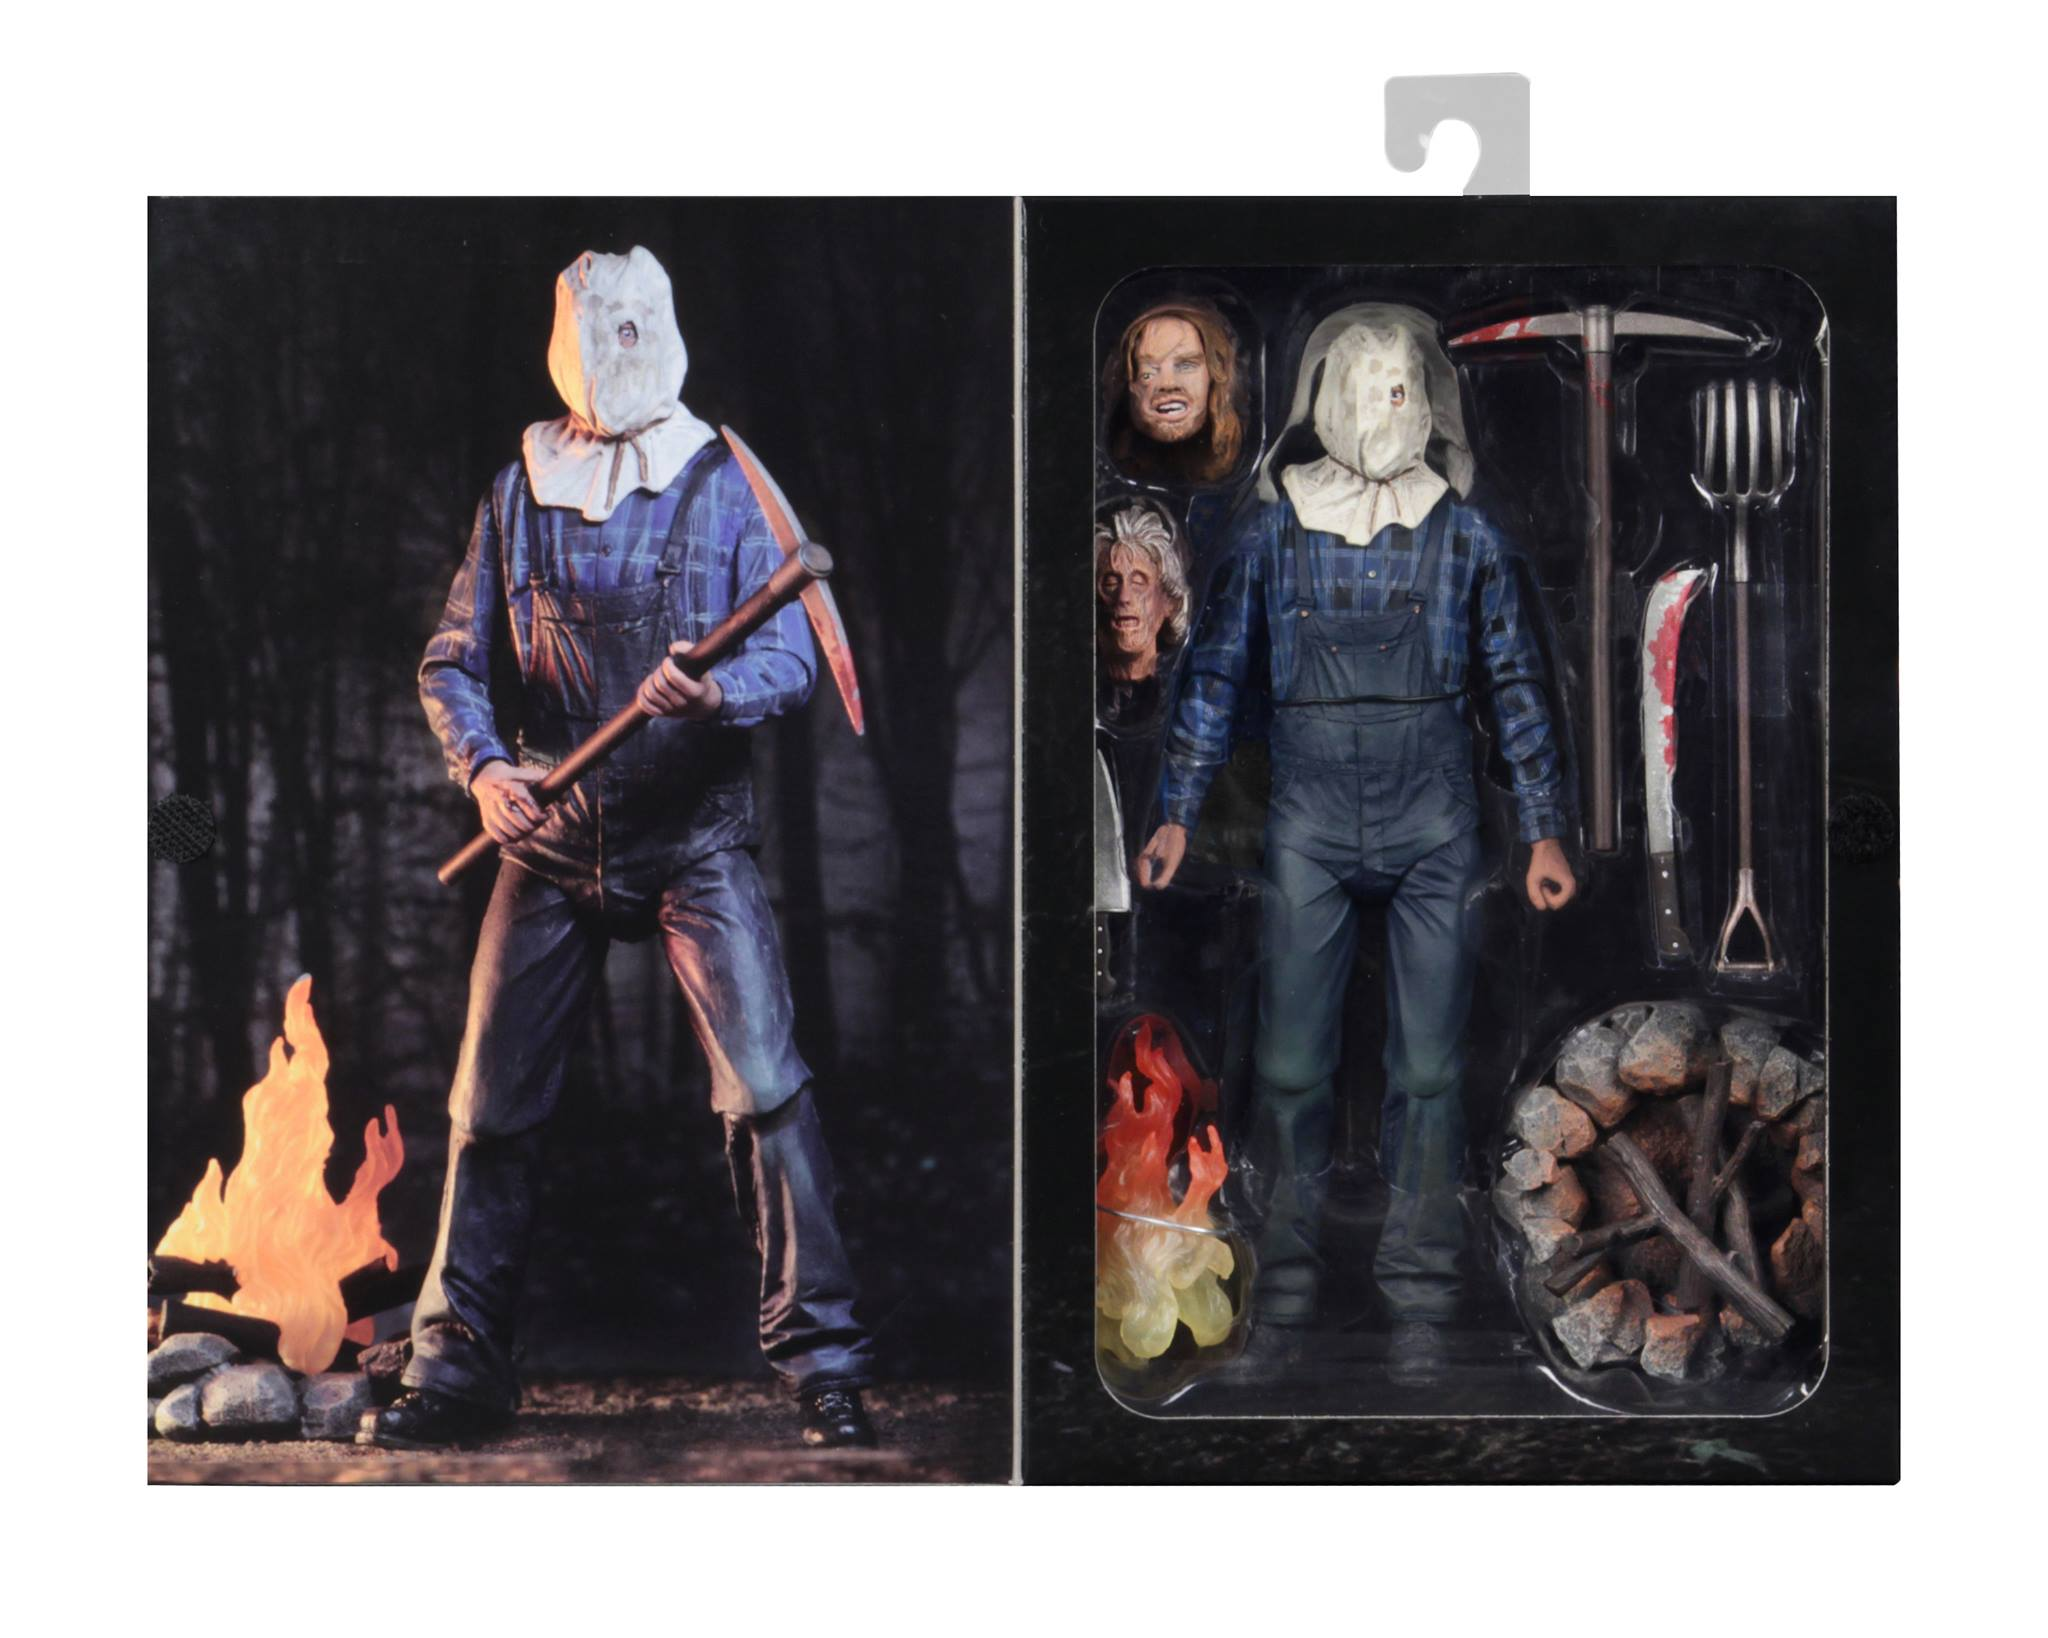 Friday the 13th Part IV 3D JASON VOORHEES Scale Ultimate Action Figure 7/""